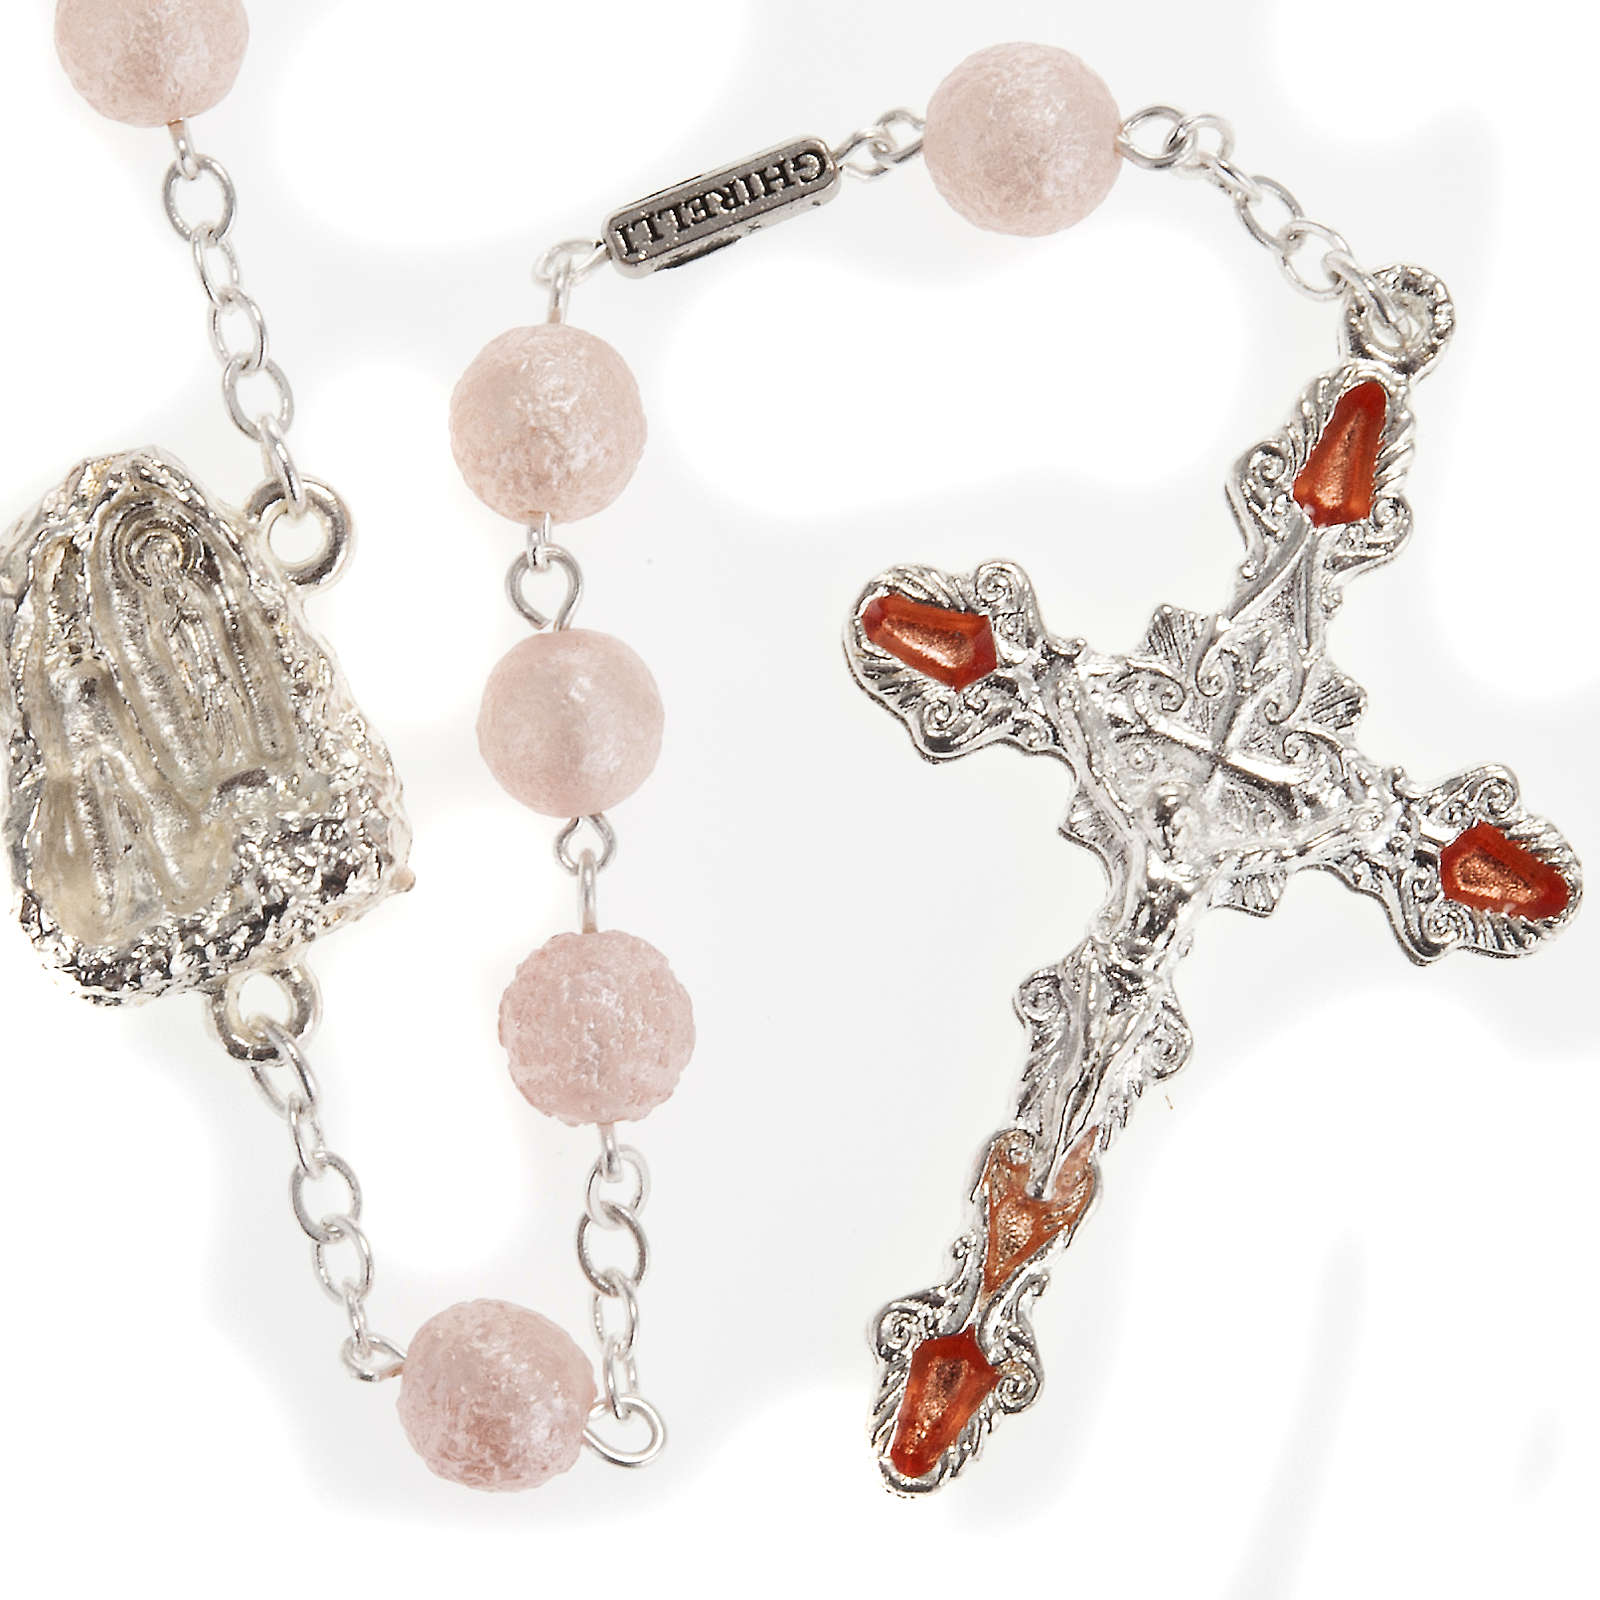 Ghirelli pink rosary Lourdes Grotto, opaque glass 7mm 4